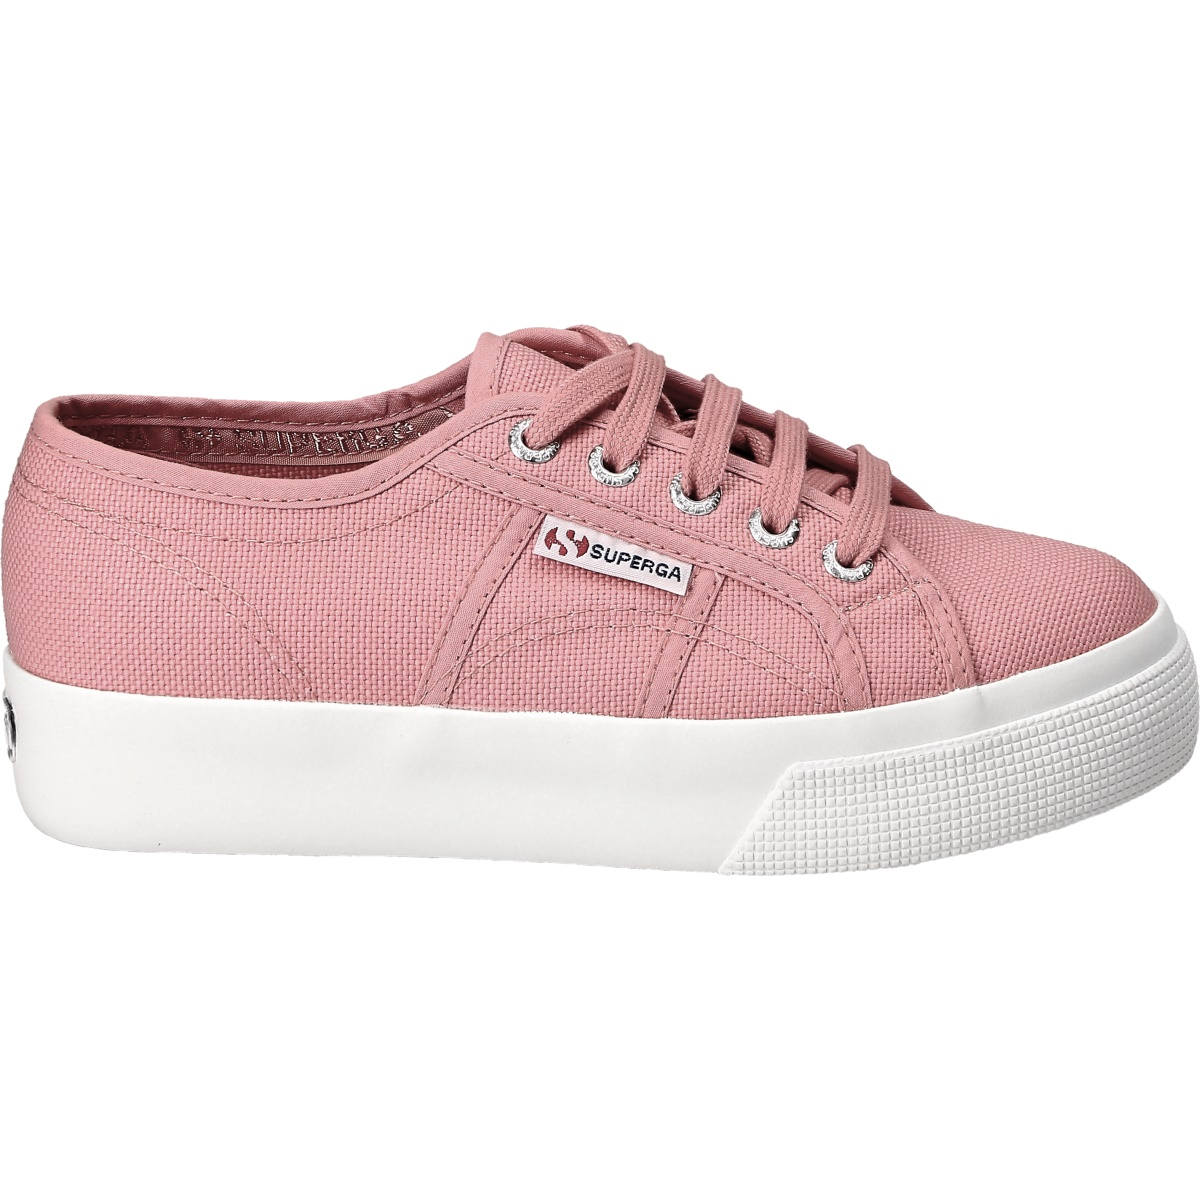 Superga S00C3N0 S974 Women's shoes Lace ups buy shoes at our